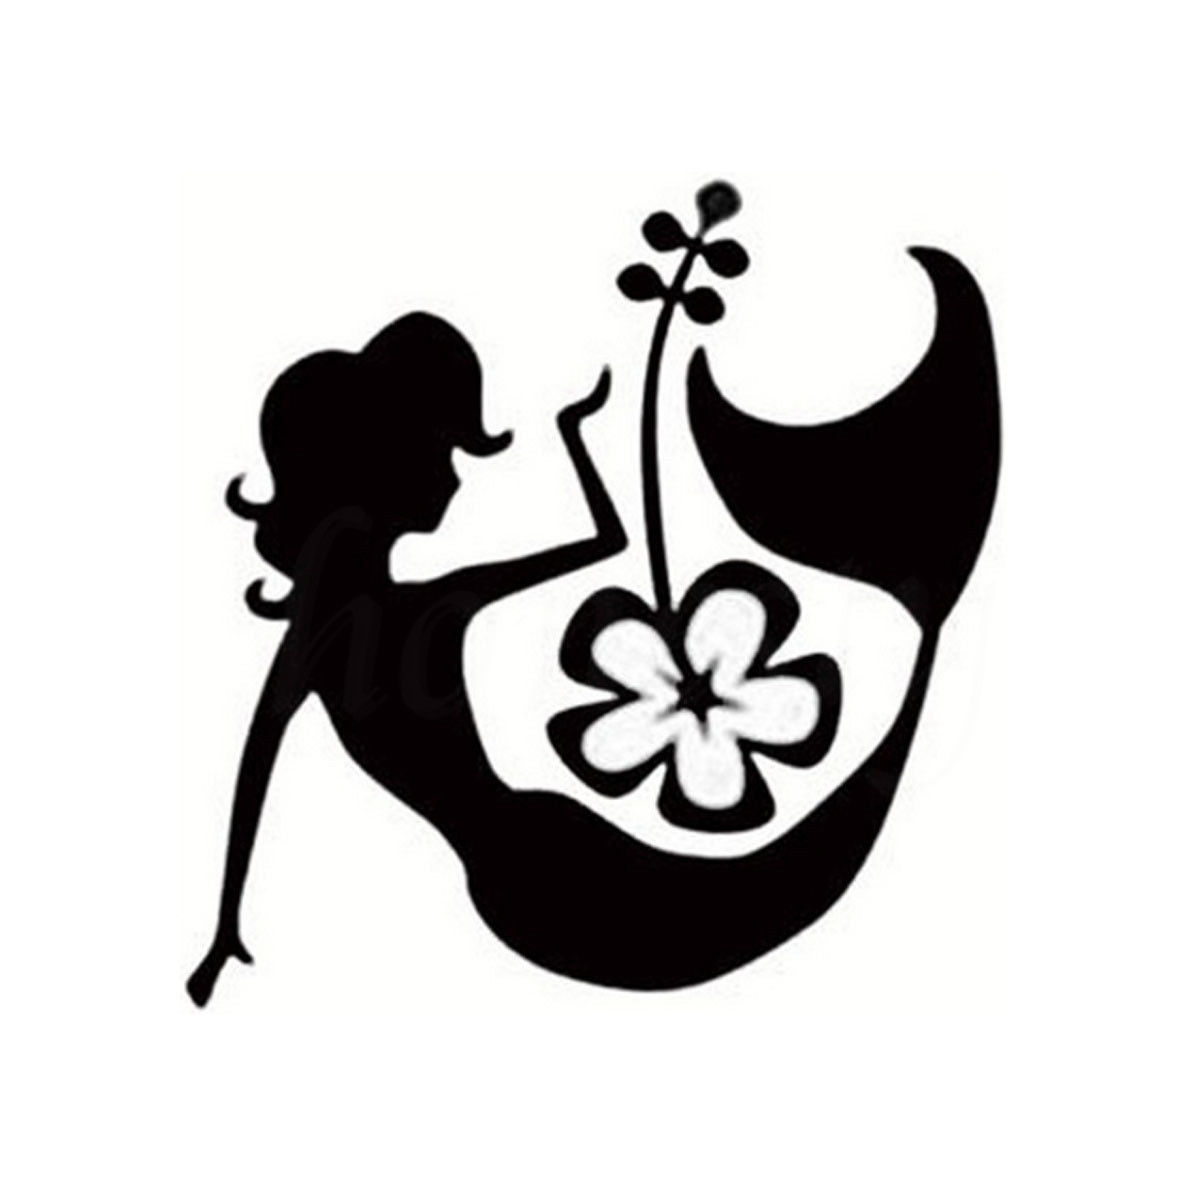 Sexy mermaid hibiscus flower island girl car sticker wall home glass sexy mermaid hibiscus flower island girl car sticker wall home glass window door creative vinyl decal black 115cmx117cm in car stickers from automobiles izmirmasajfo